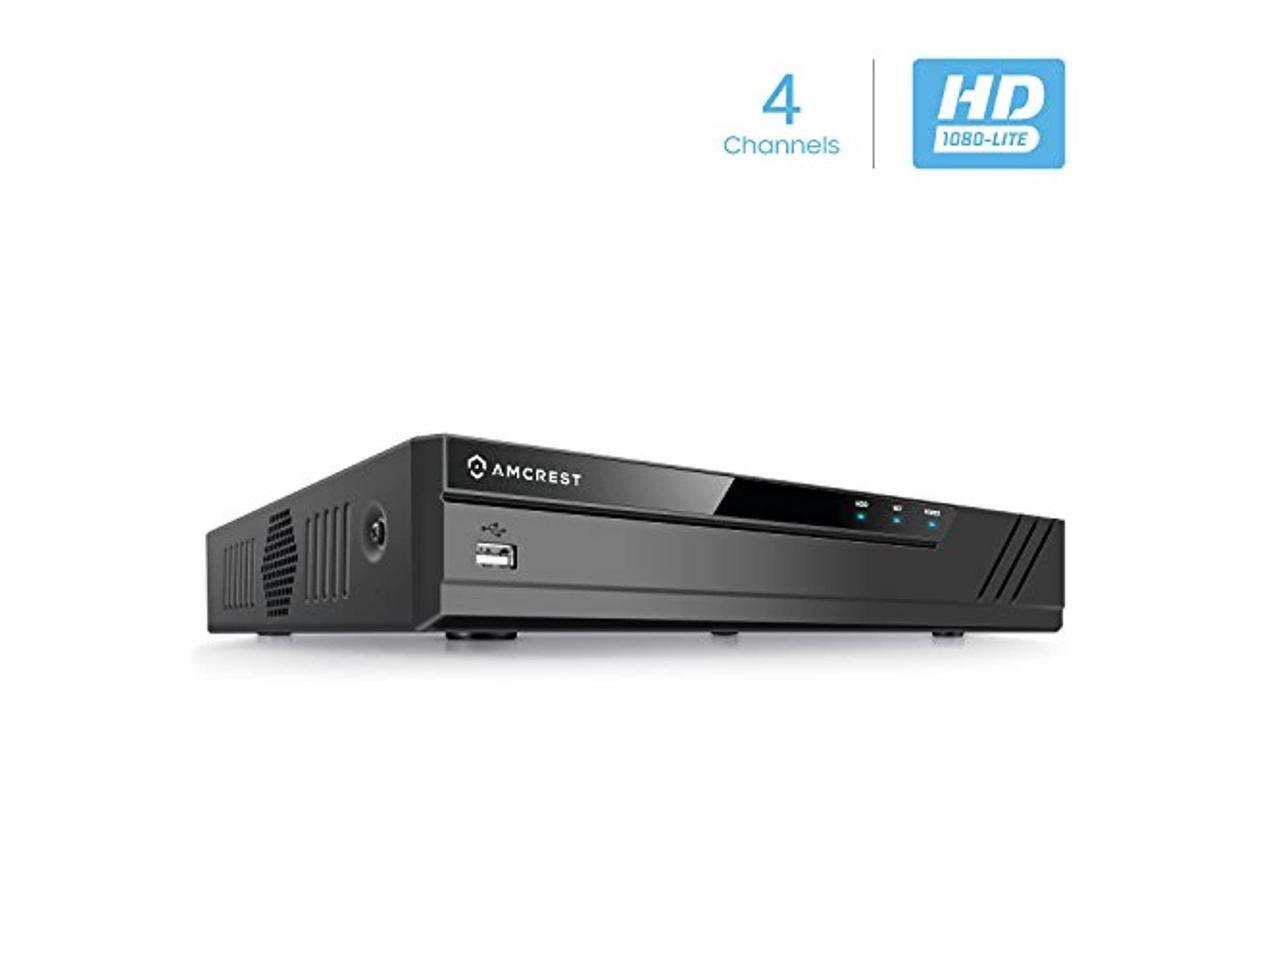 AMDVTENL4-H5 Remote Smartphone Access HDD /& Cameras NOT Included Amcrest 1080n ProHD 4 Channel DVR Security Camera System Recorder Security DVR for Analog Security Cameras /& Amcrest IP Cameras